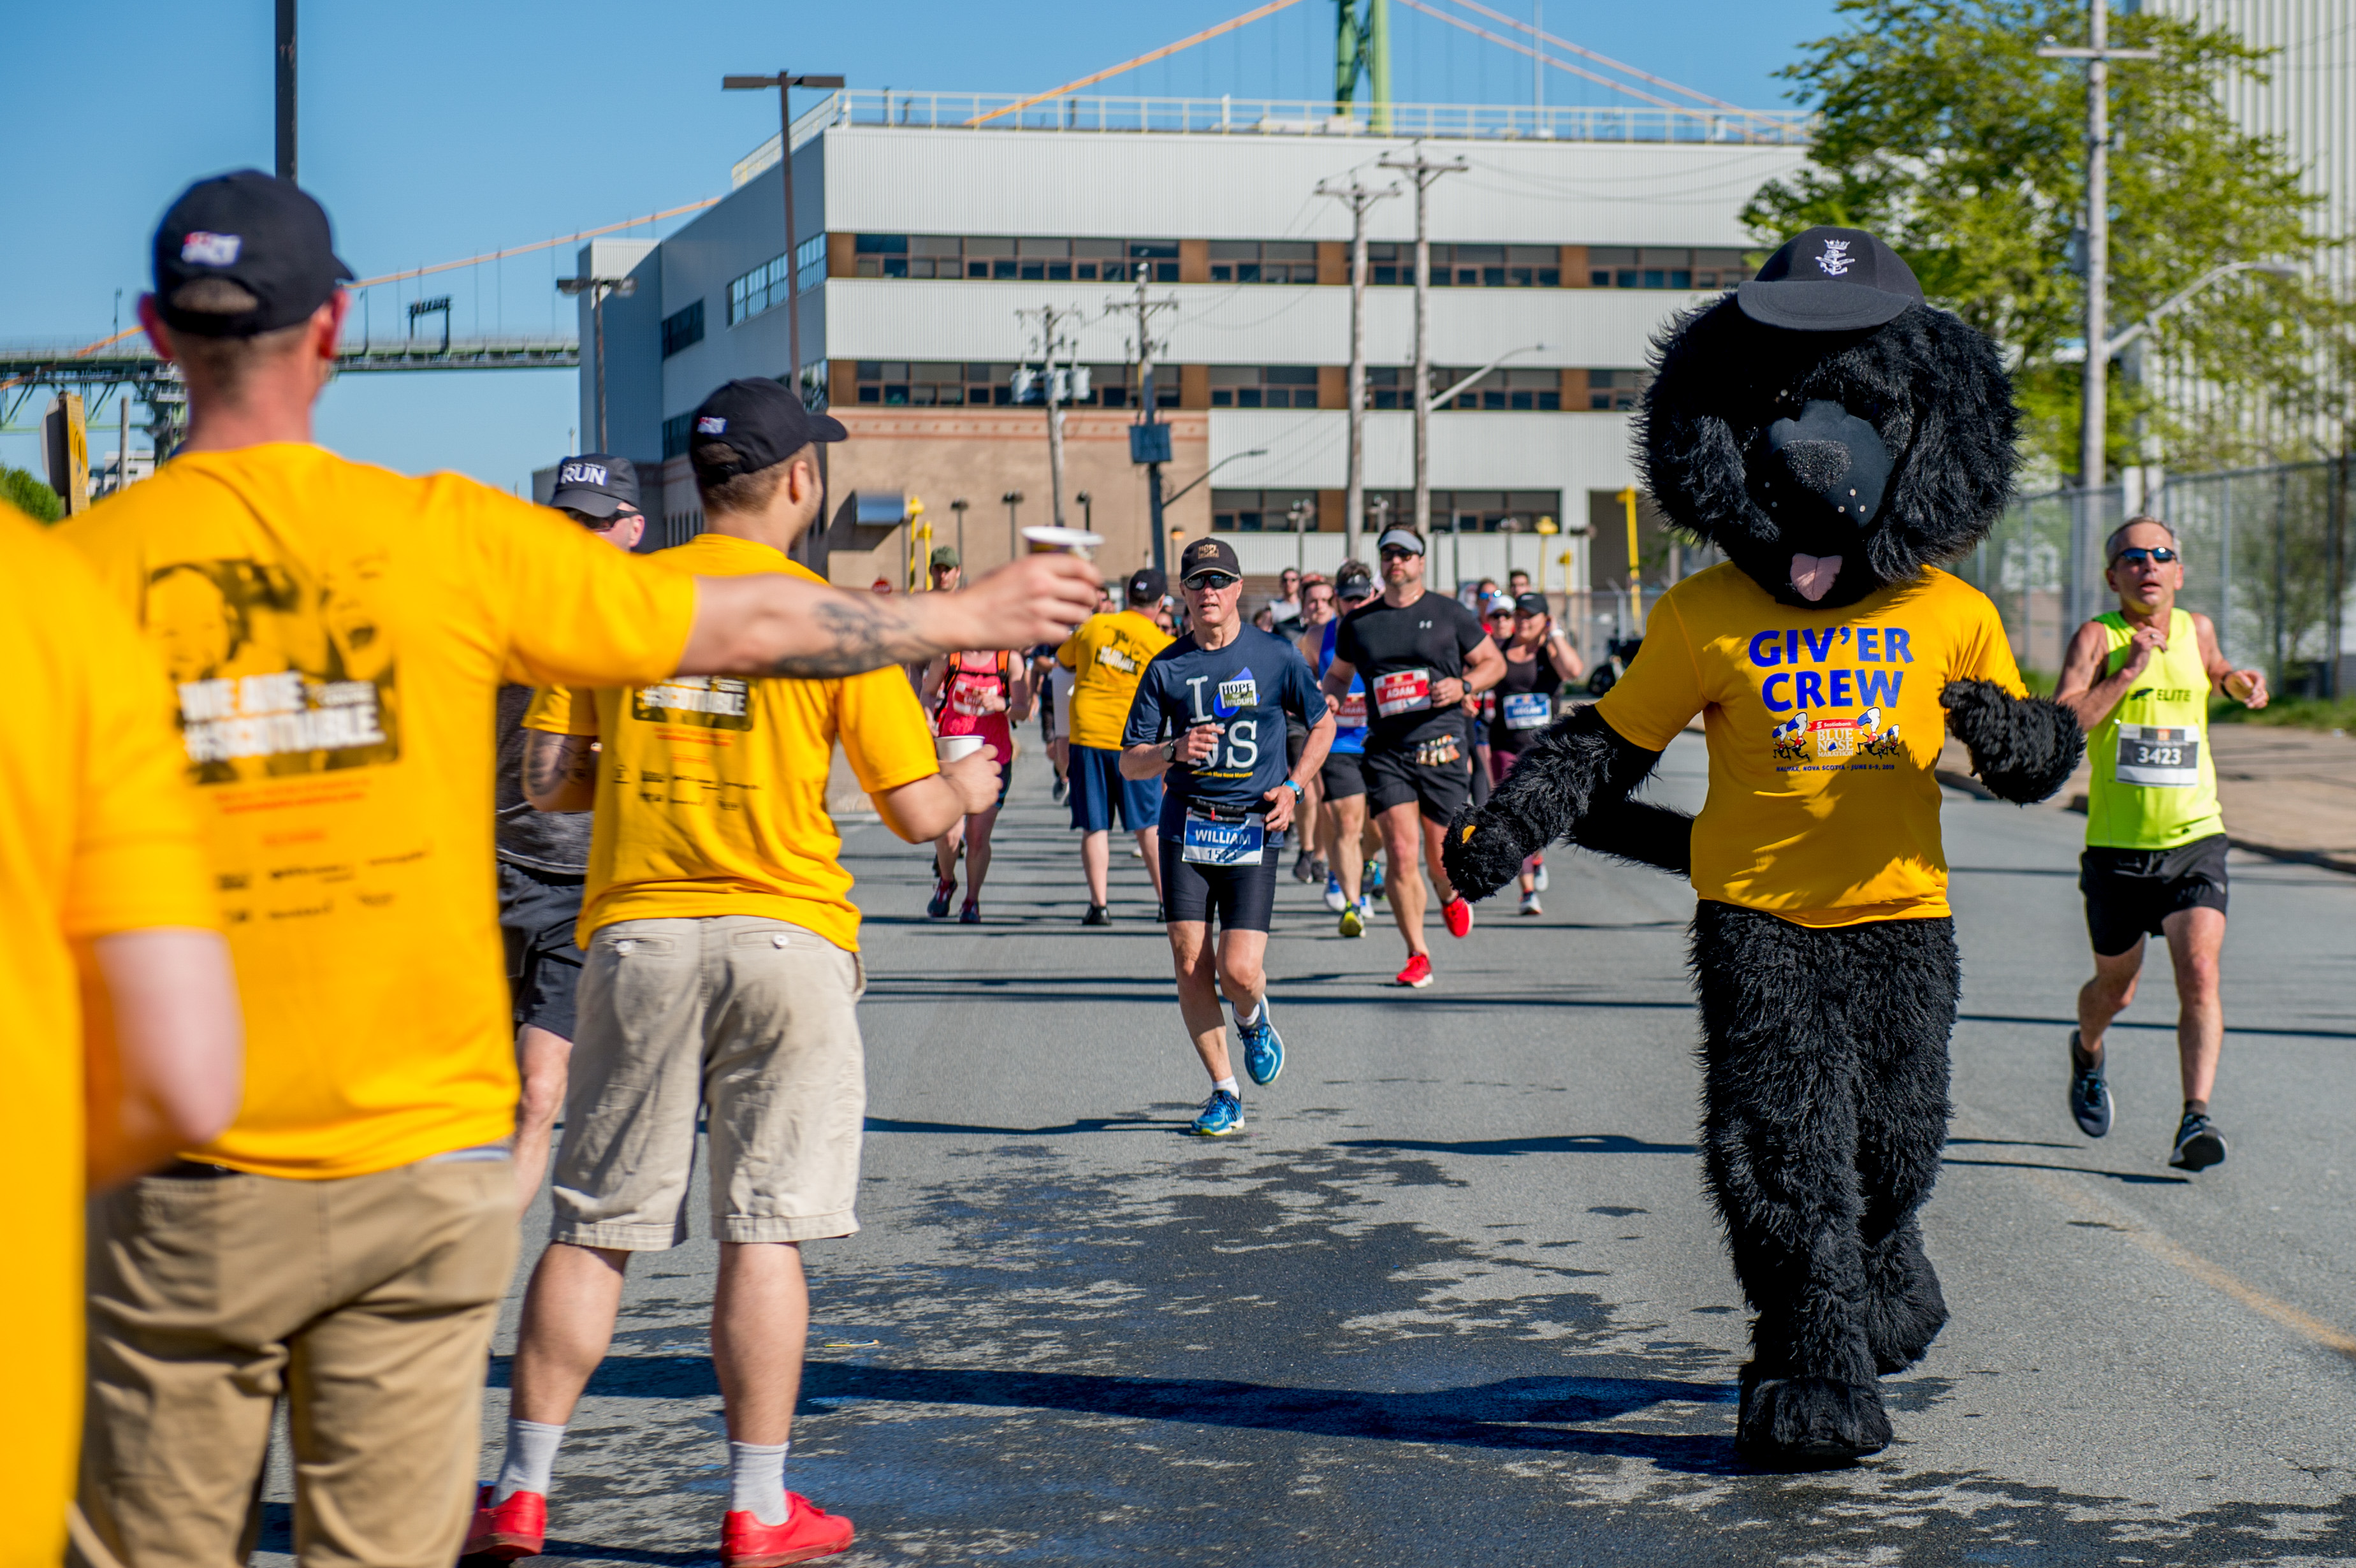 Cheering runners during the Blue Nose Marathon